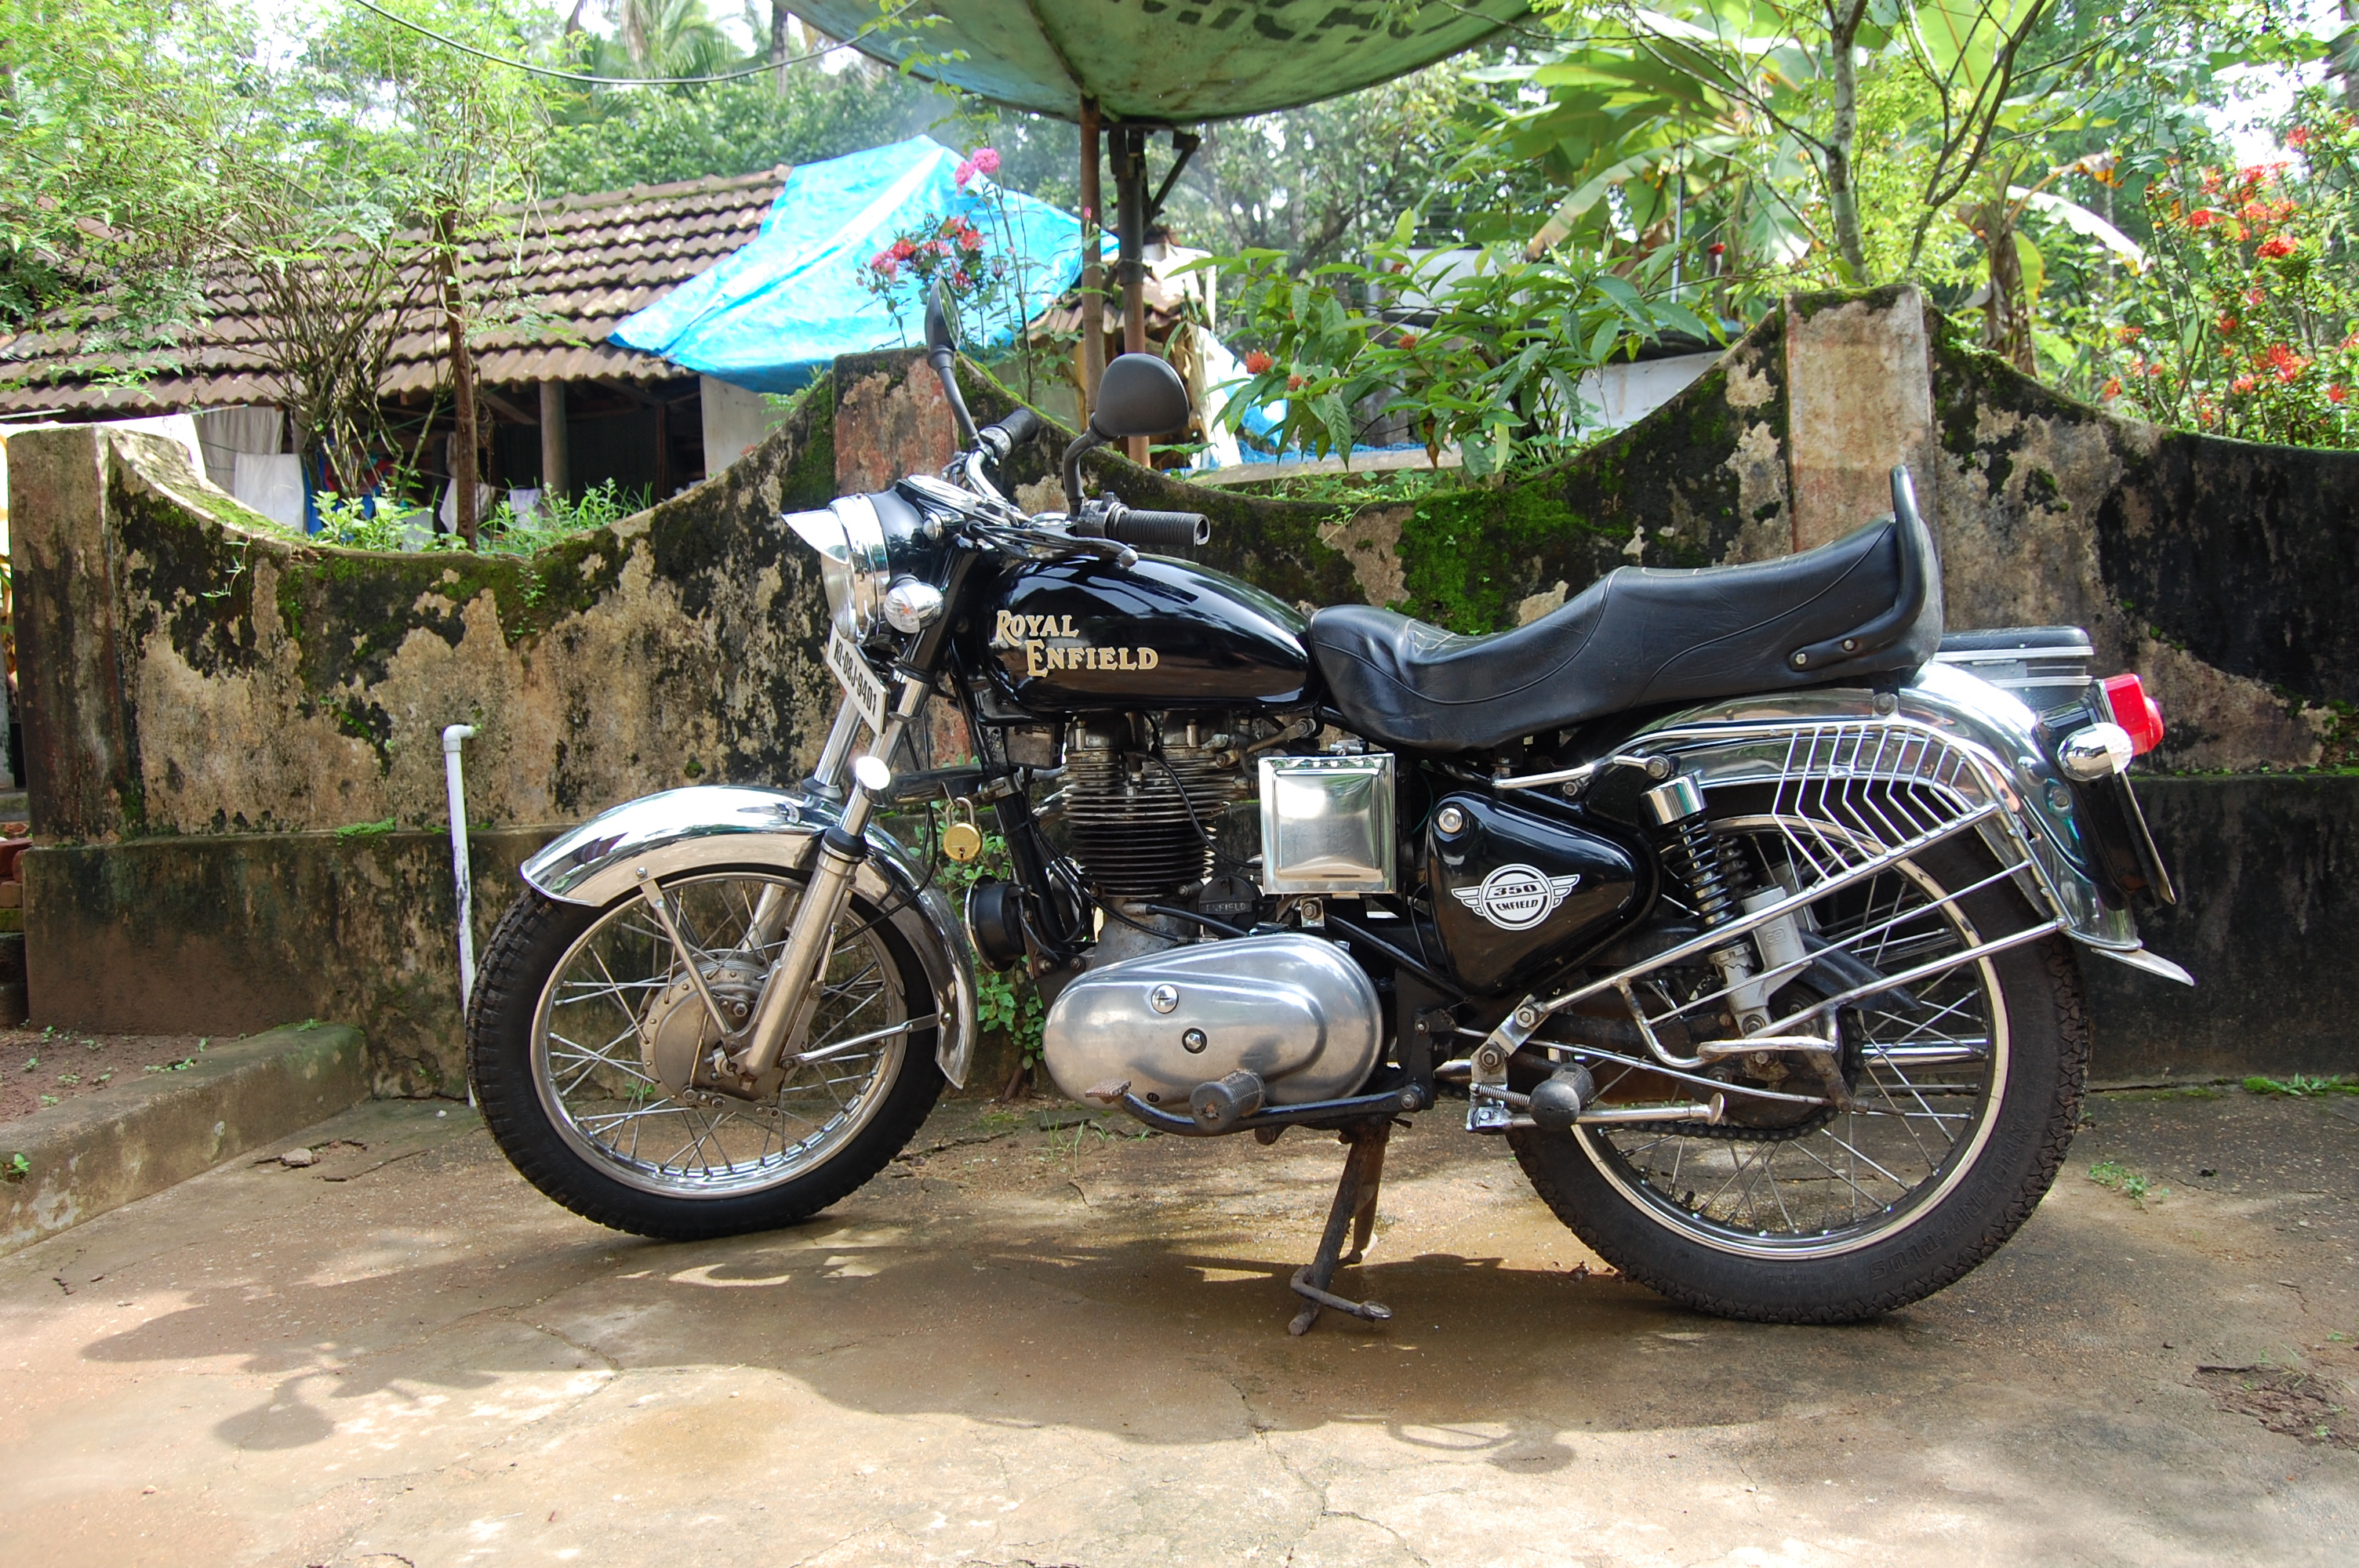 Royal enfield 350 photo - 3